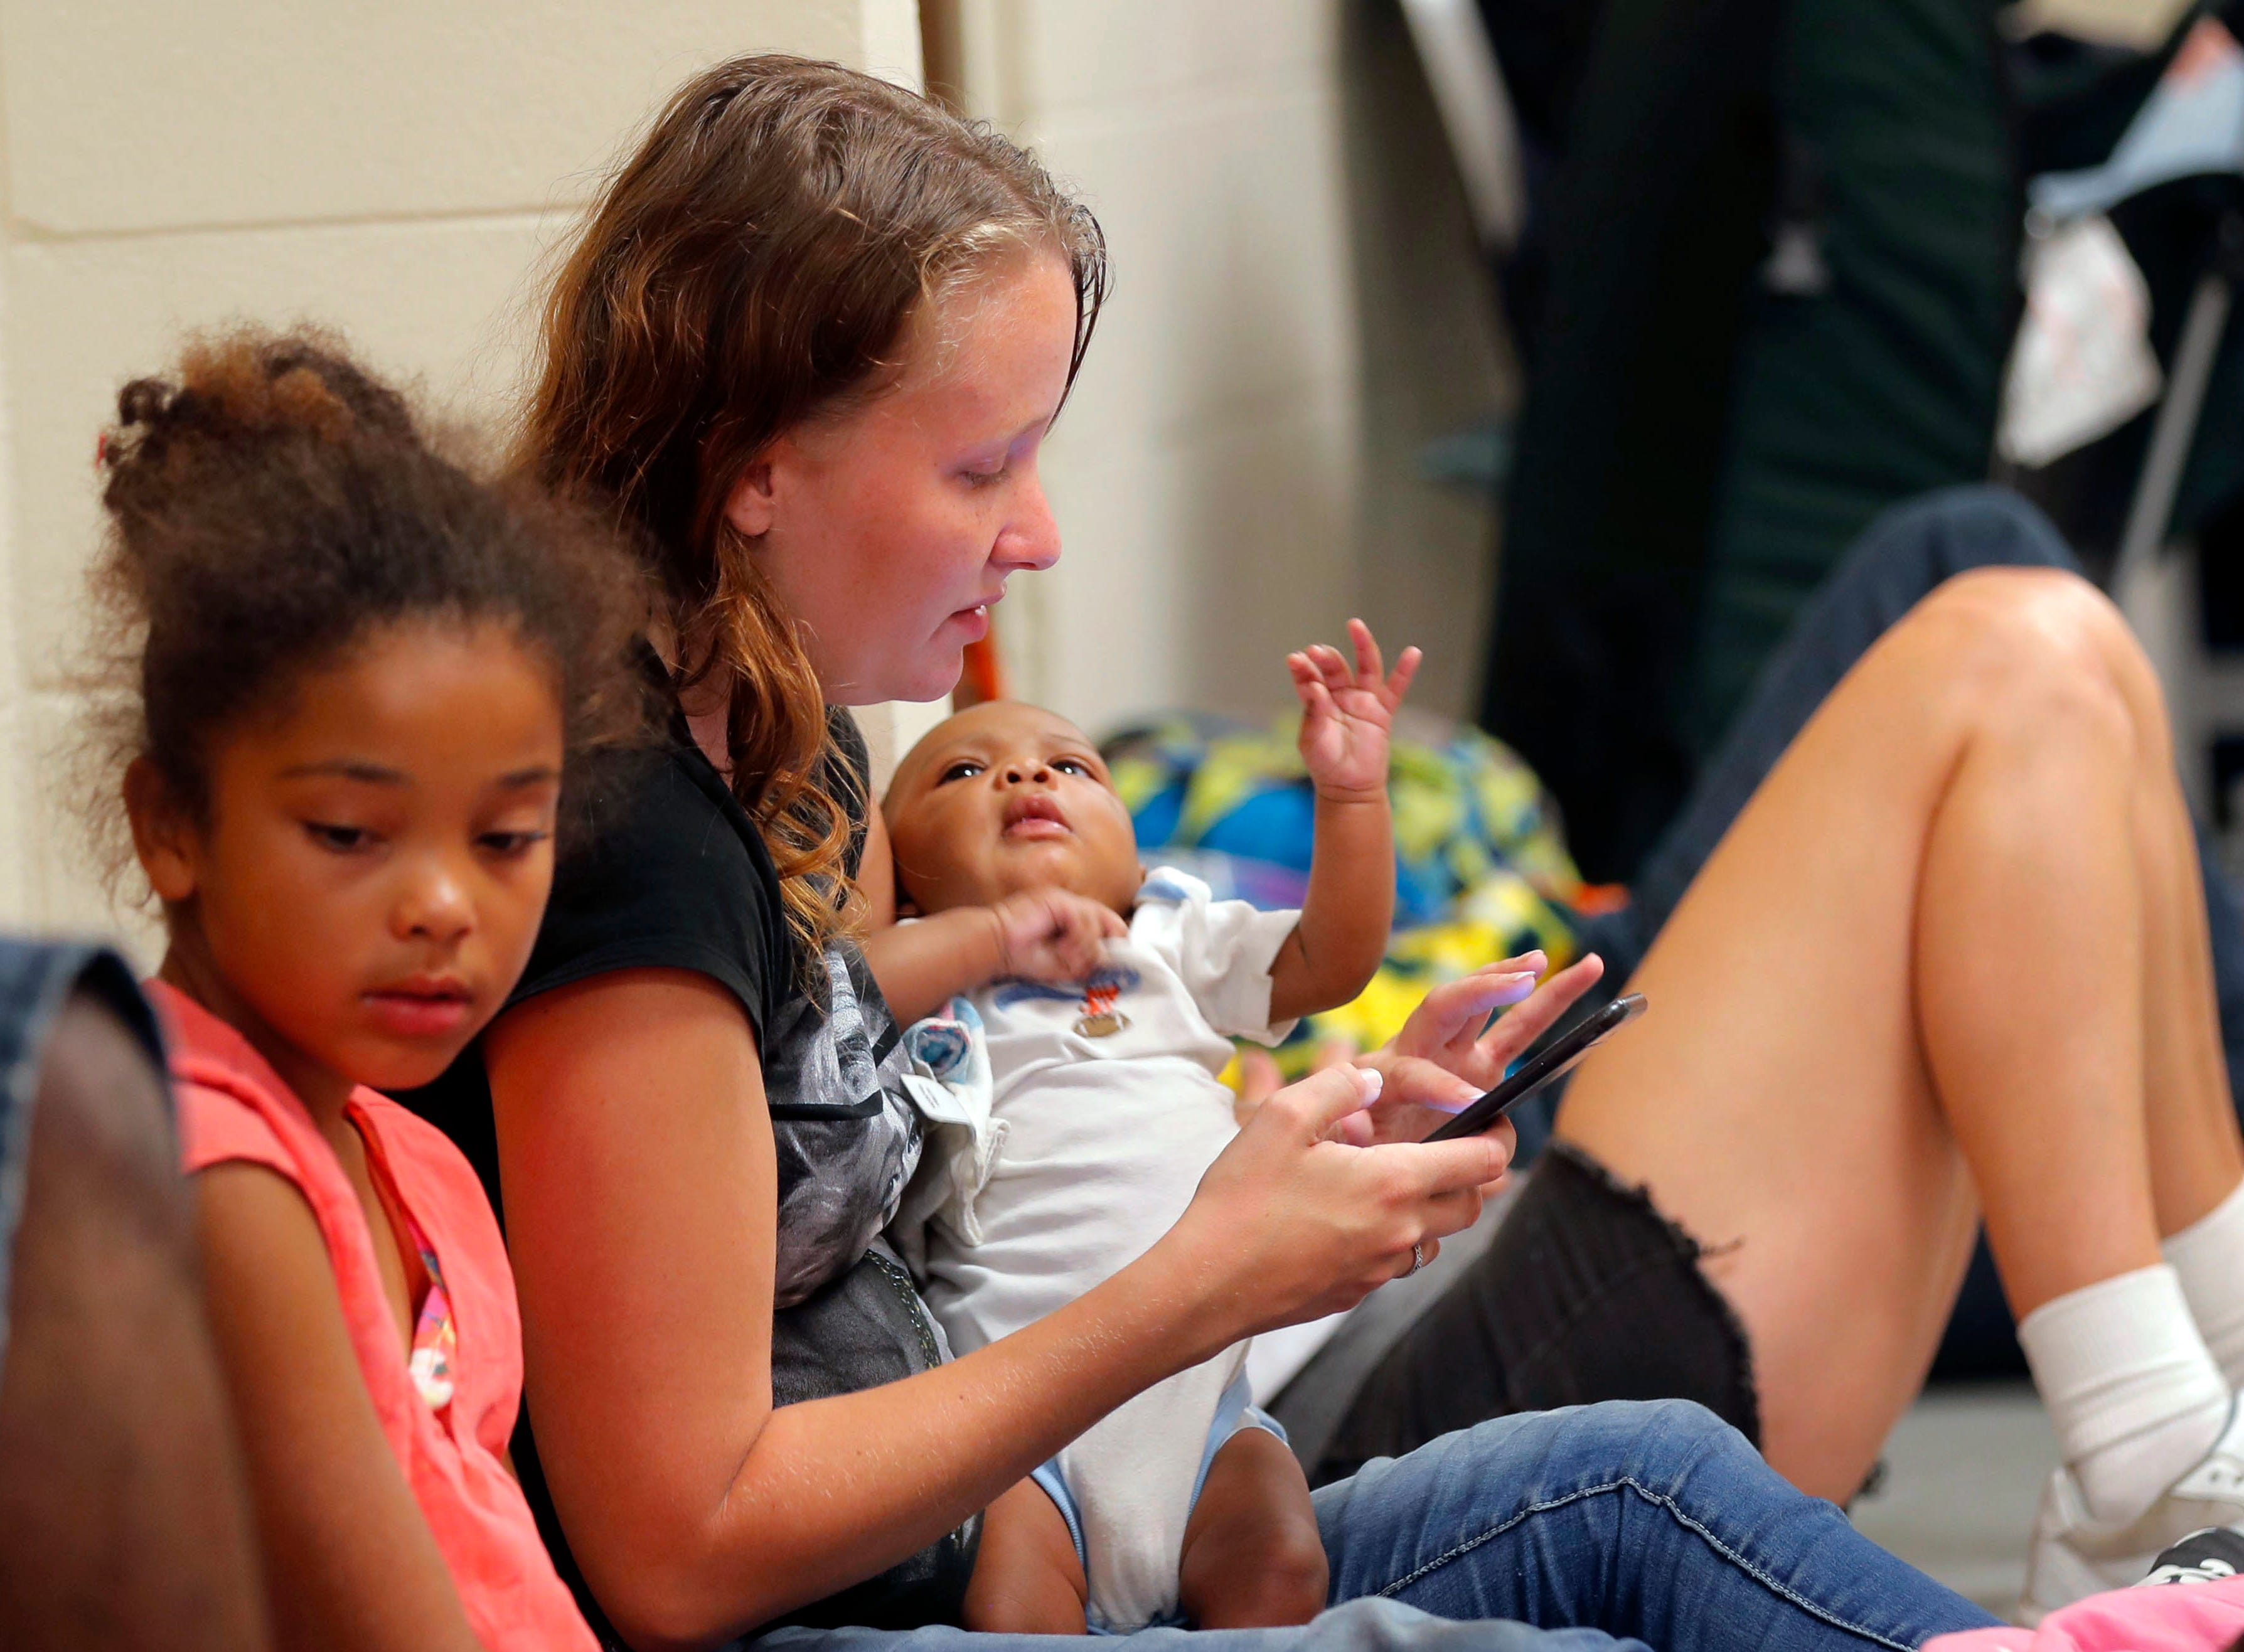 CORRECTS NAME OF HURRICANE TO MICHAEL FROM MATTHEW - Ashley Fillingim holds her godson Jerah'monie Anthony Bell, 2 months, at an evacuation shelter set up at Rutherford High School, in Panama City Beach, Fla., in advance of Hurricane Michael, which is expected to make landfall, Wednesday, Oct. 10, 2018.